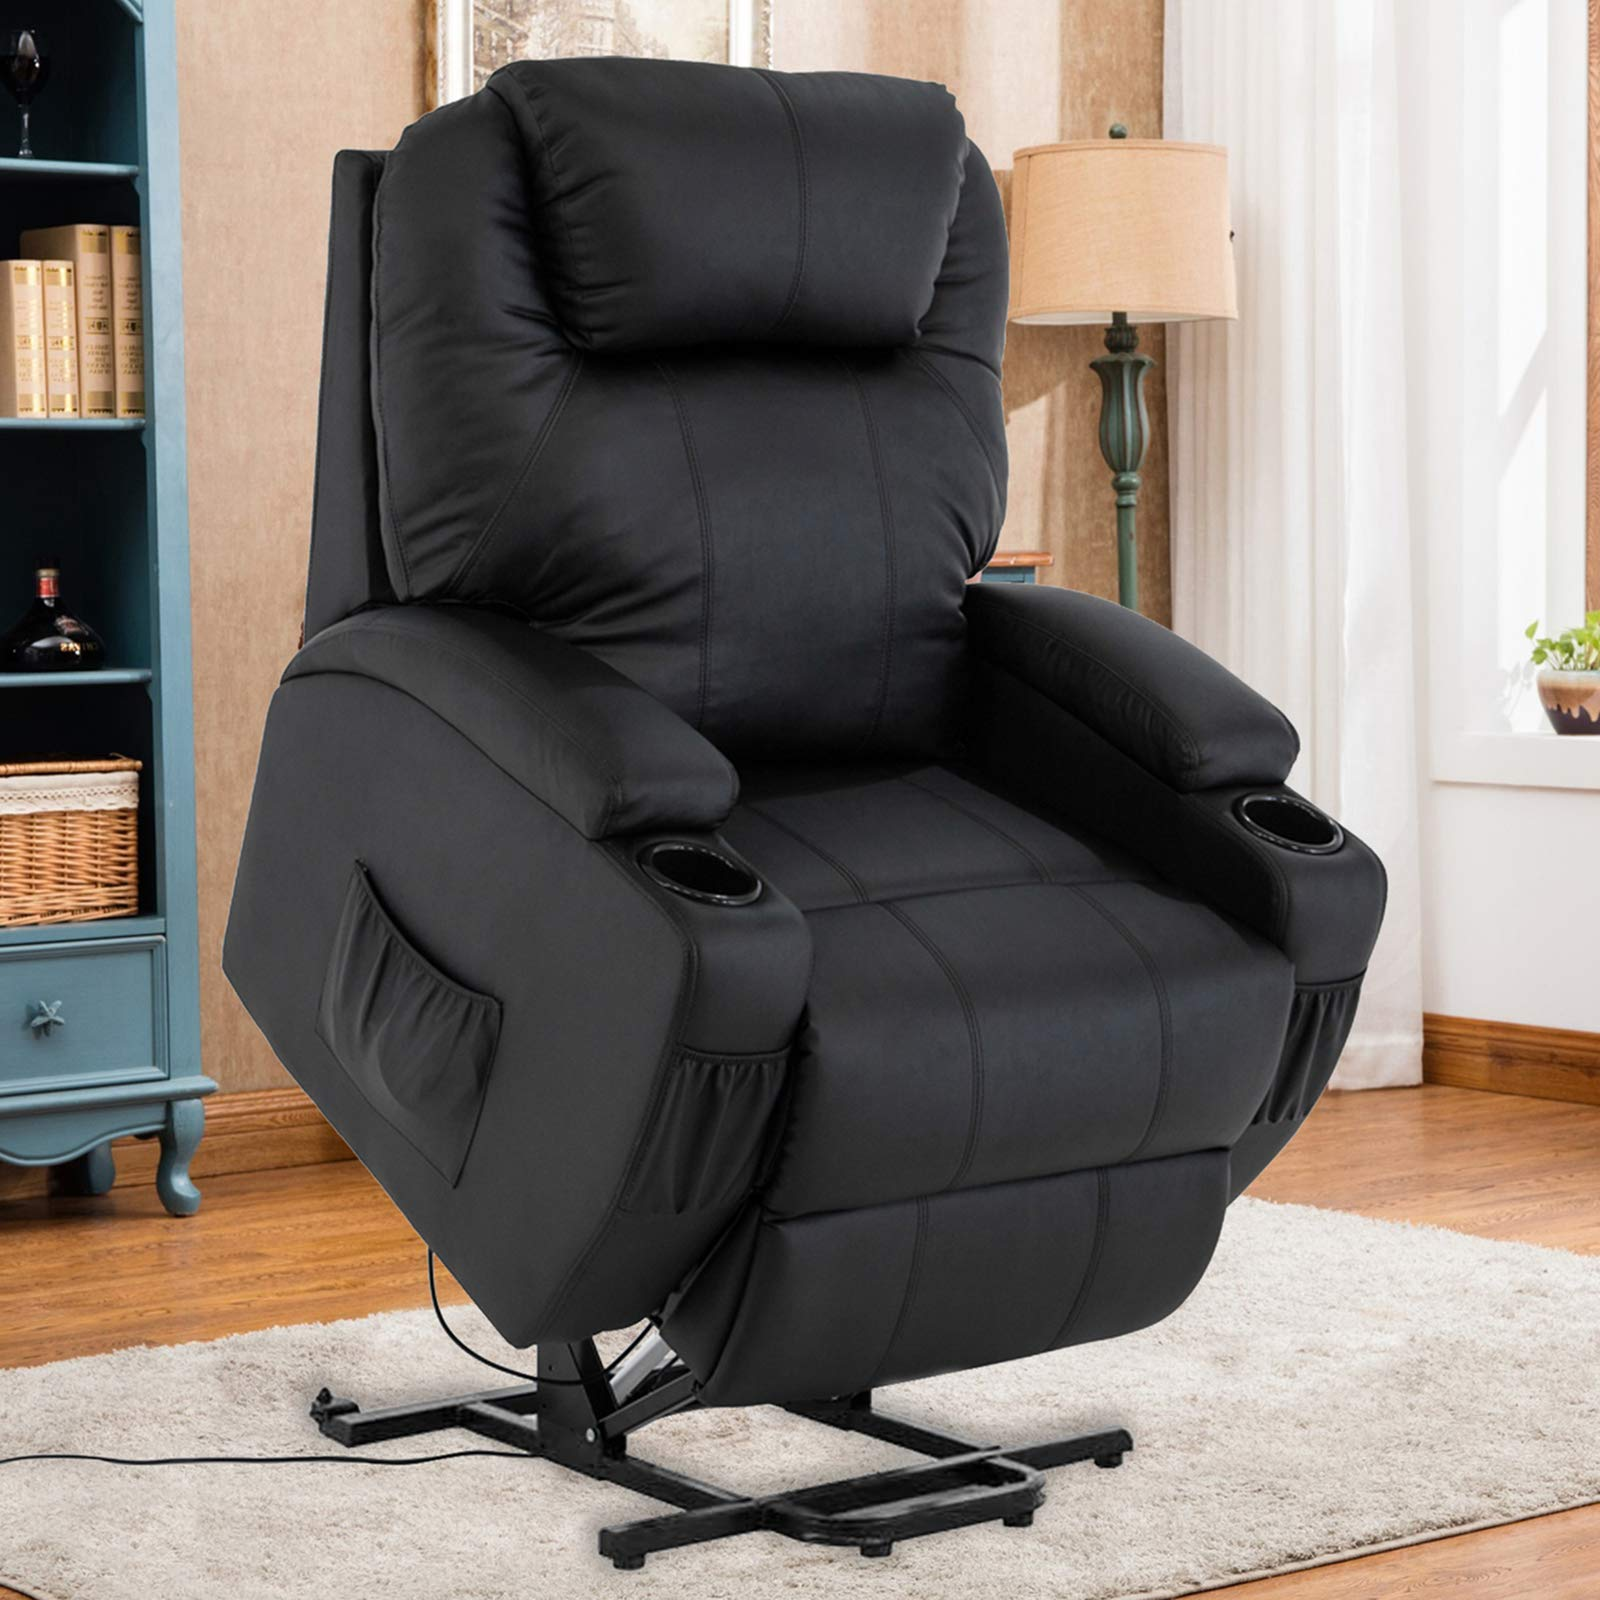 Mecor Power Lift Recliner Lift Chair for Elderly Bonded Leather Electric Lifting Chair with Remote Control/Cup Holders/Reinforced Heavy Duty Reclining Mechanism for Living Room (Black) by mecor